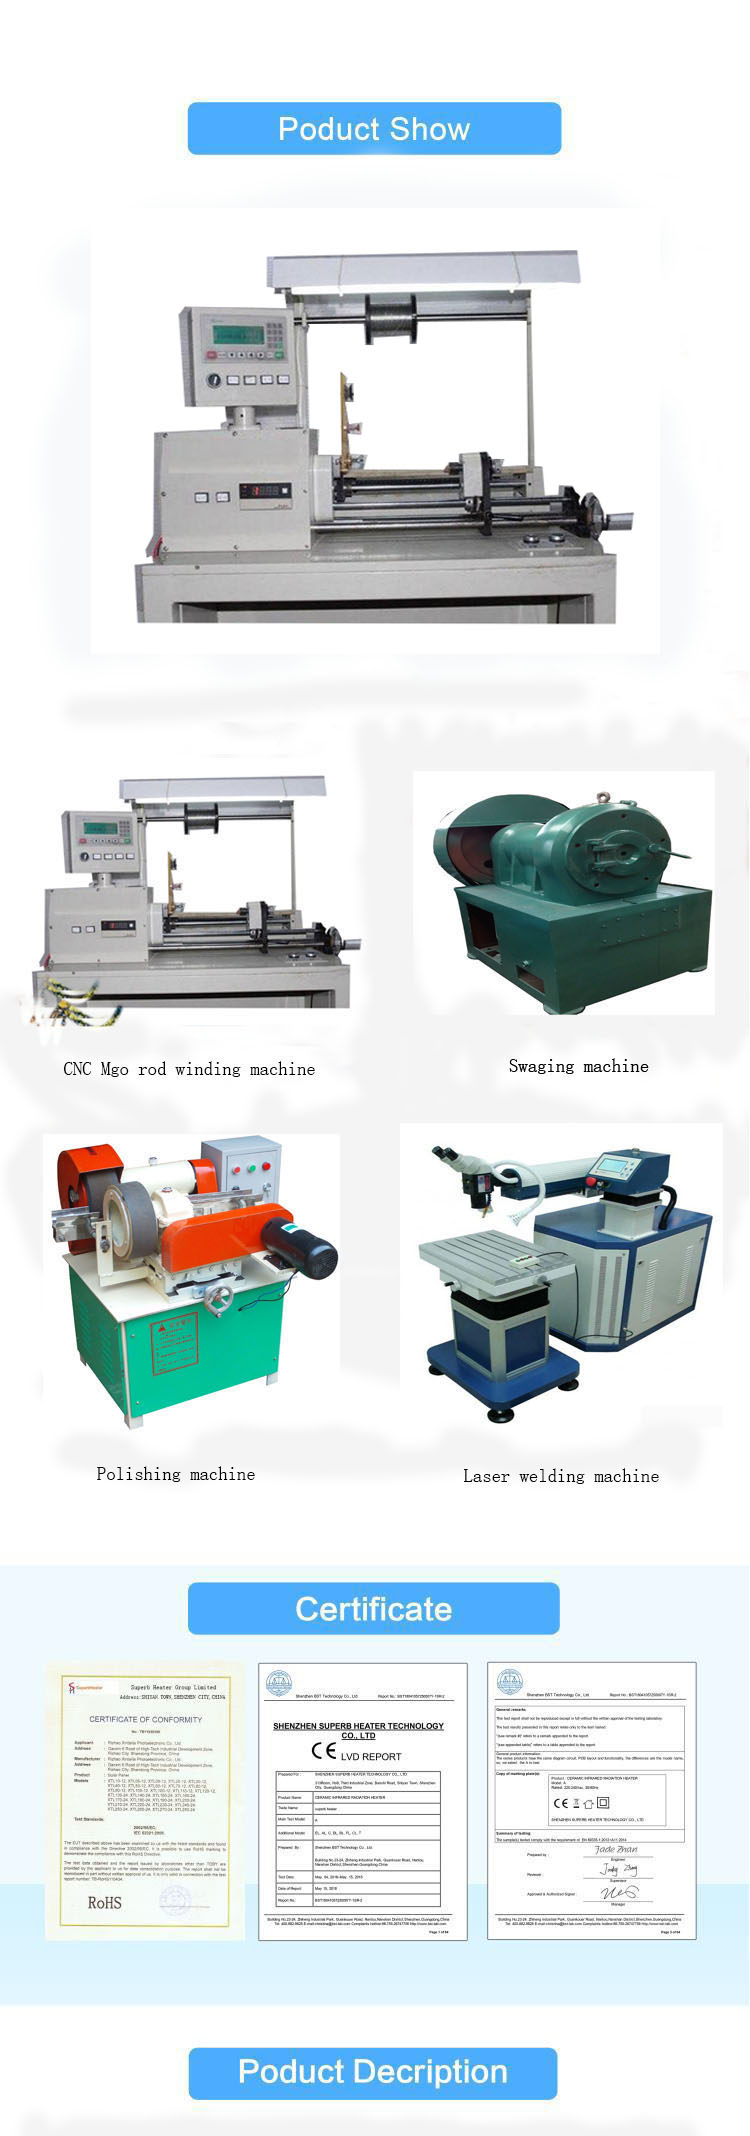 CNC winding machine.jpg